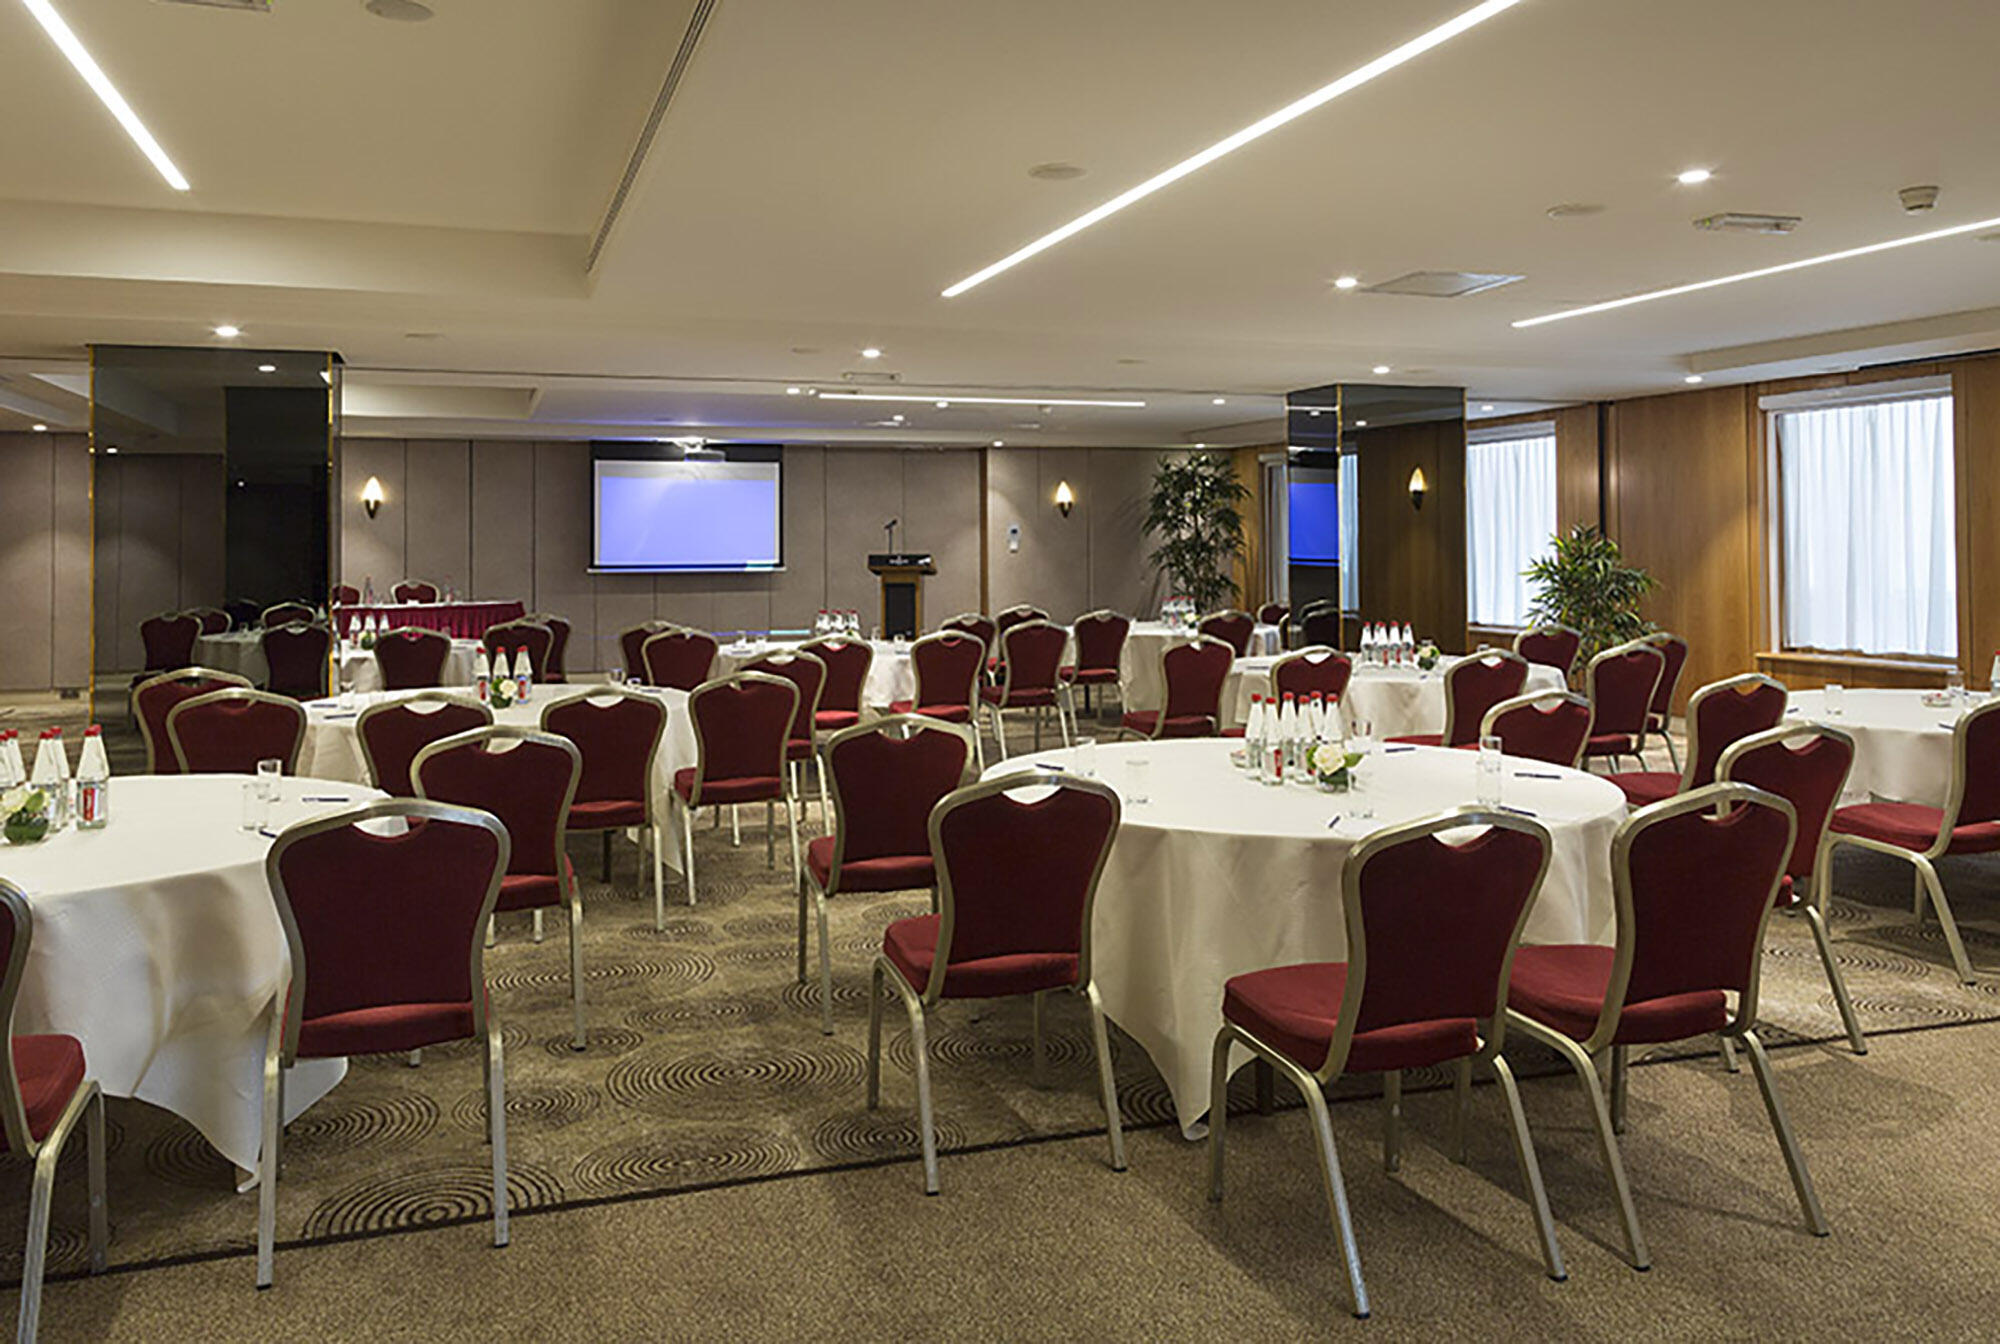 Meeting and events at Warwick Brussels Hotel